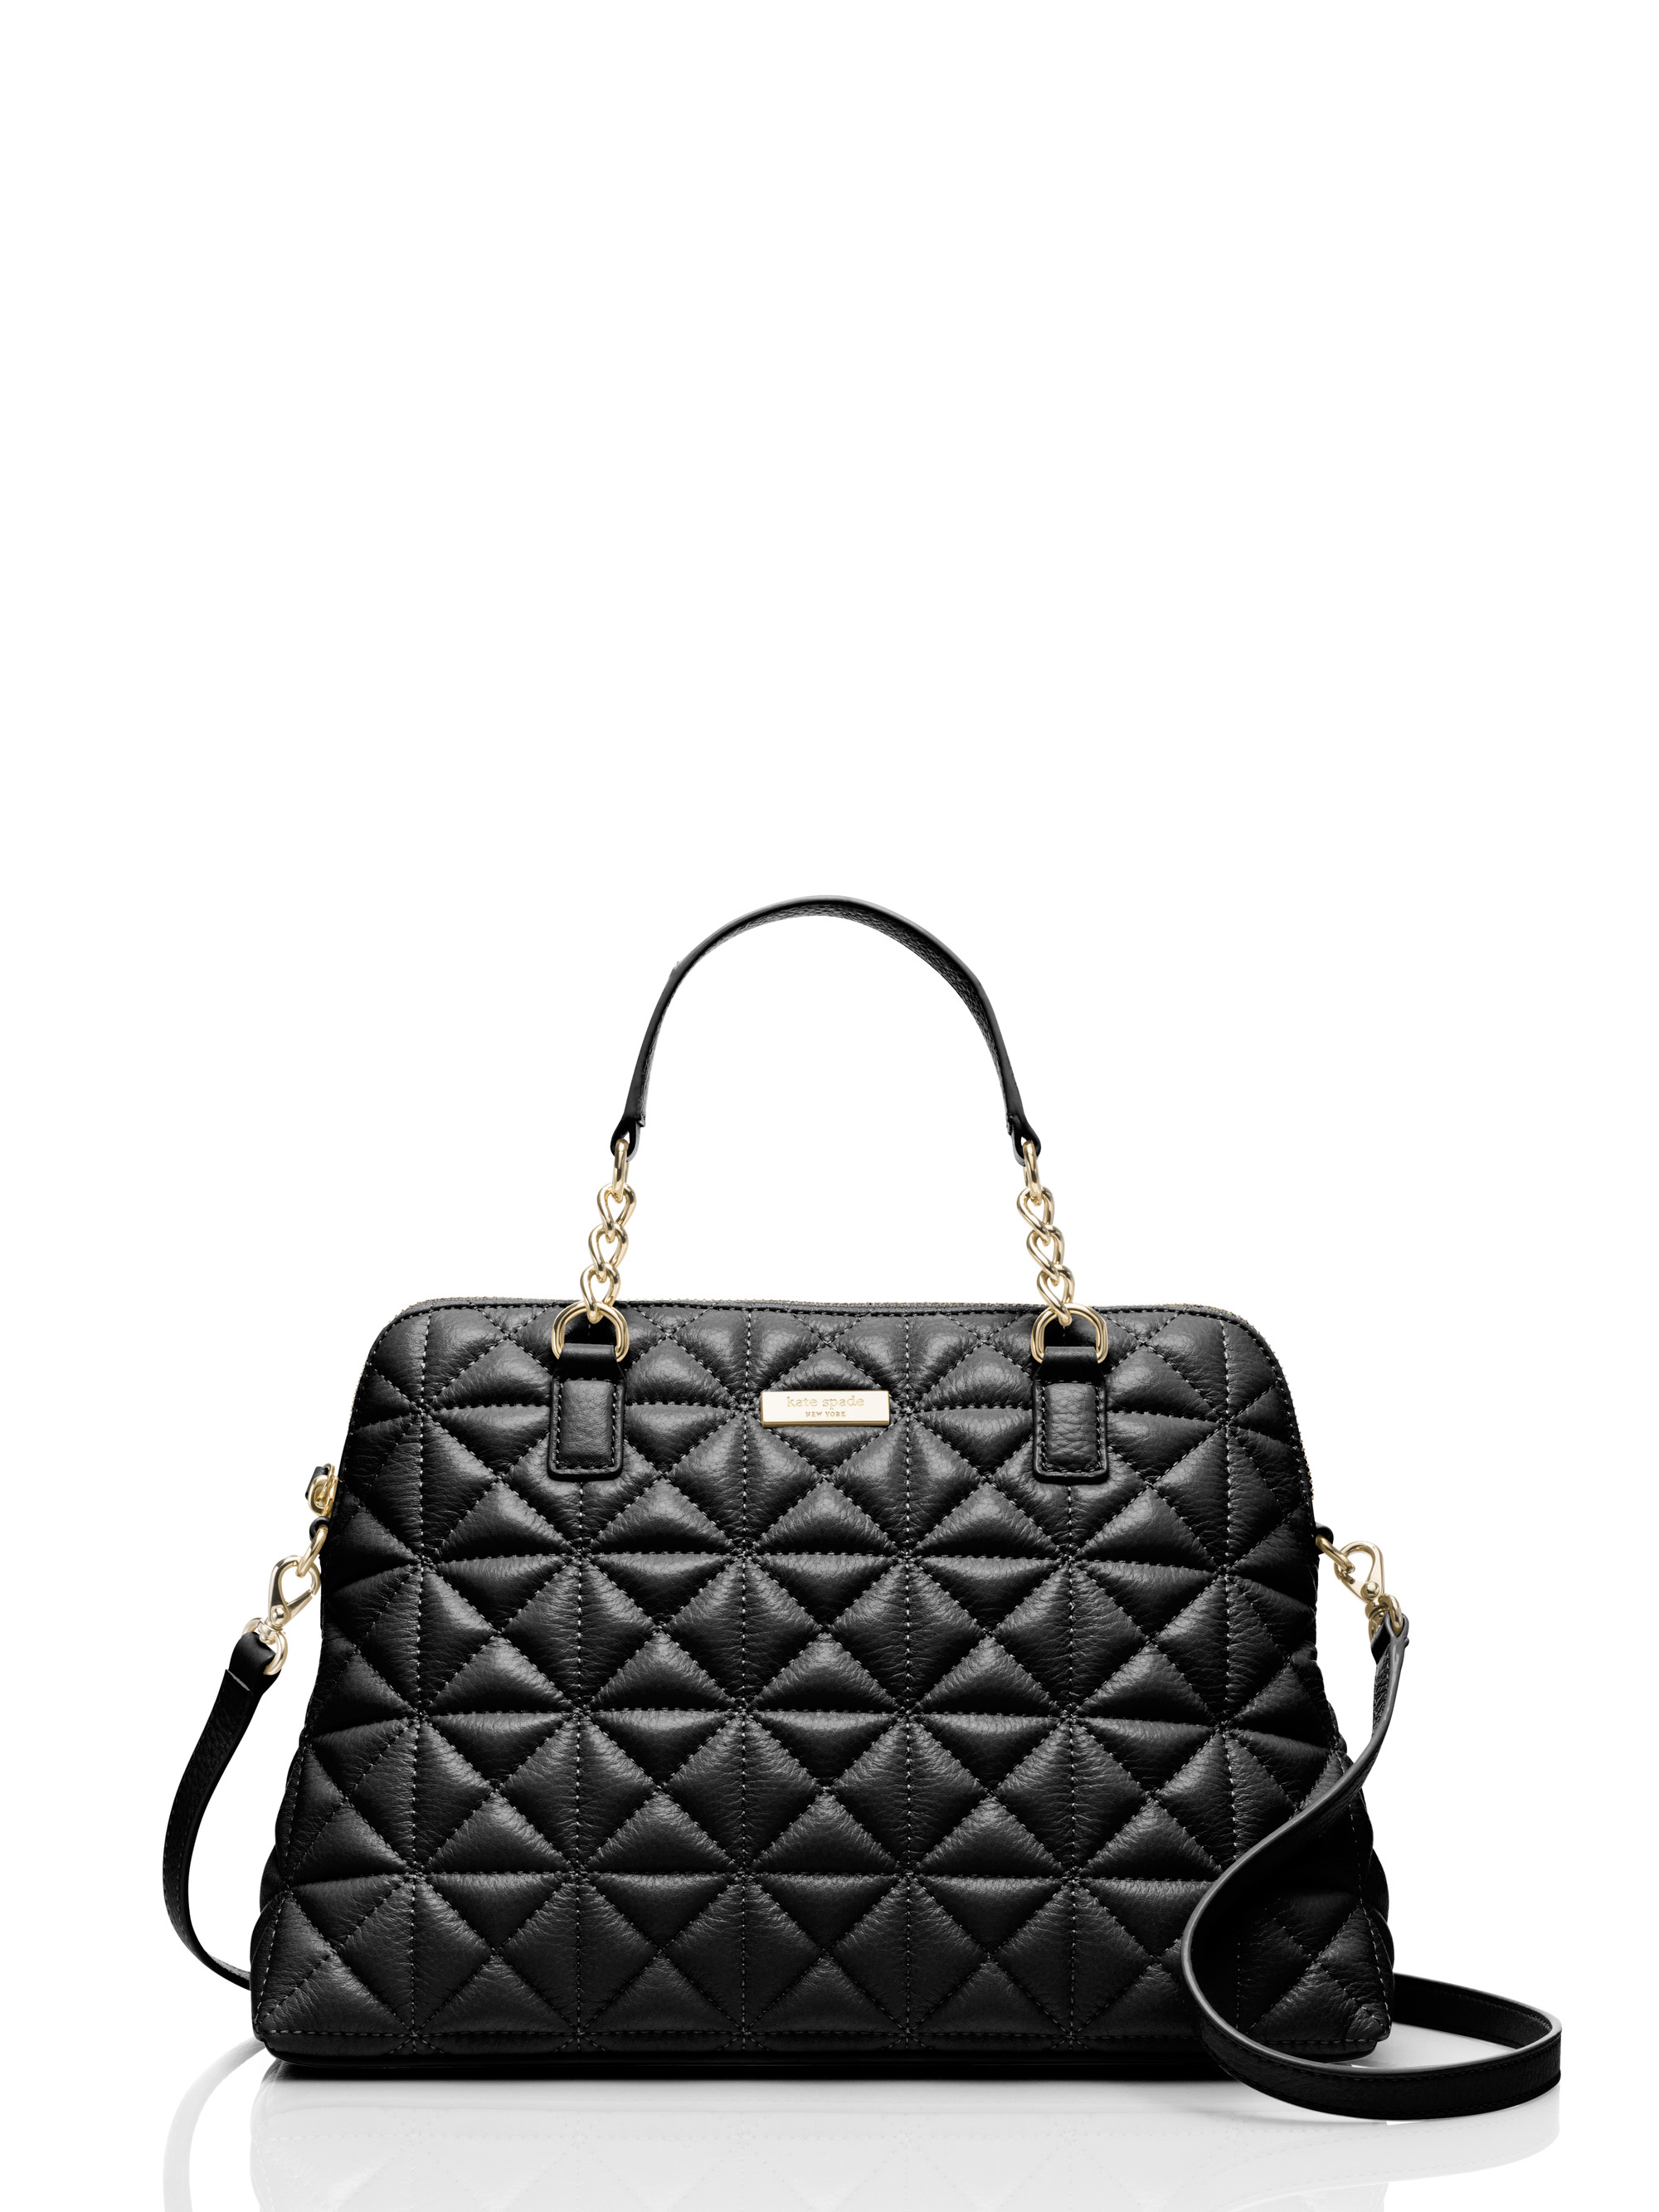 Lyst - Kate Spade Whitaker Place Small Rachelle in Black f8d98989b1404